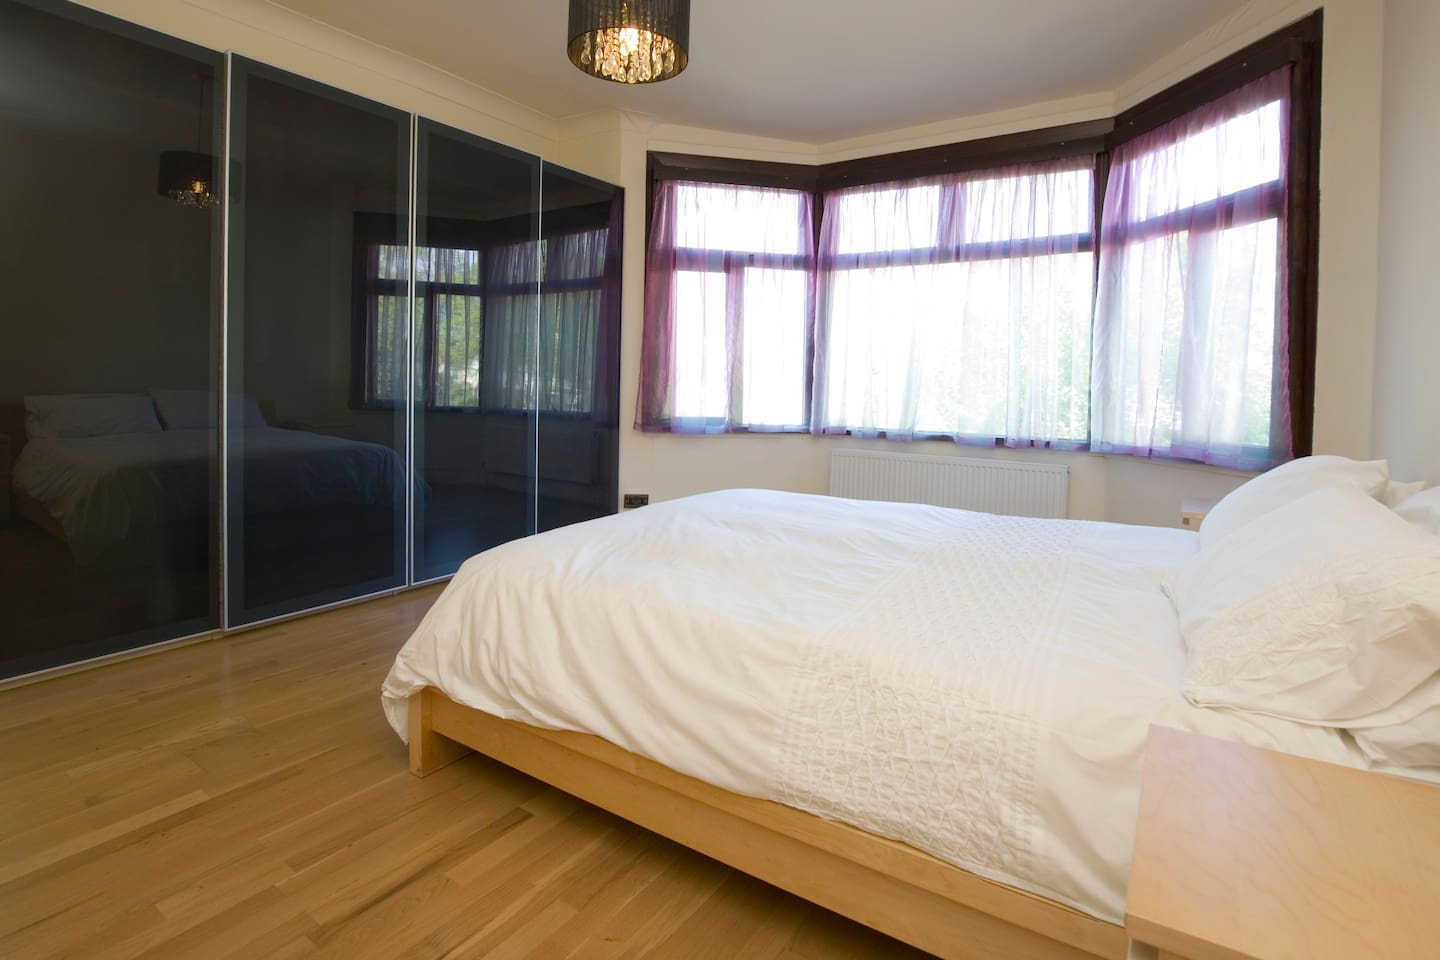 Master bedroom - view from the doorway. Large room with sapce for a cot, huge wardrobe and air-conditioning